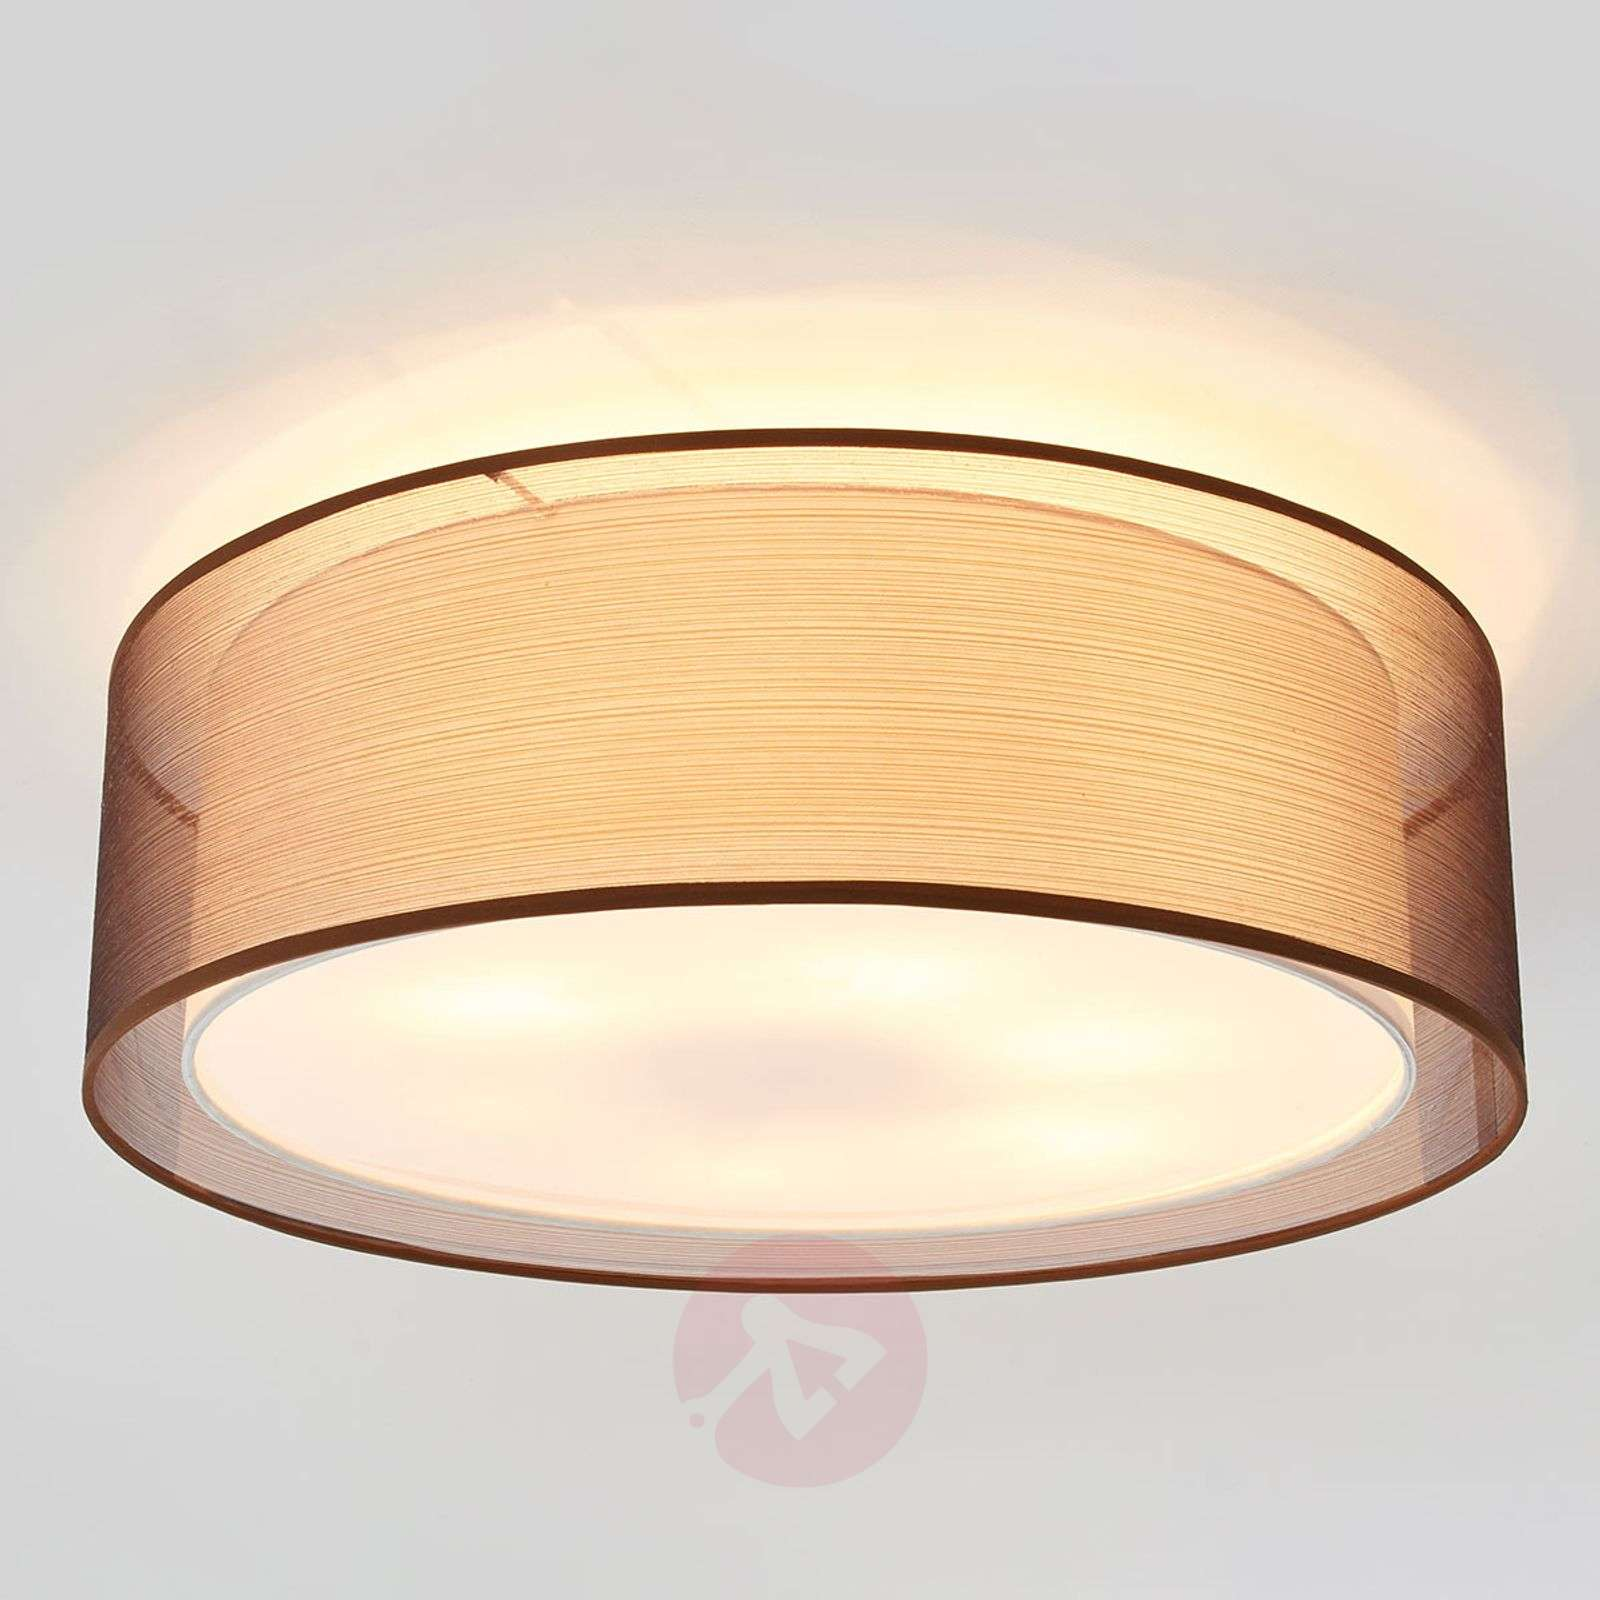 Ophelia ceiling light made of fabric, brown-4018129-02